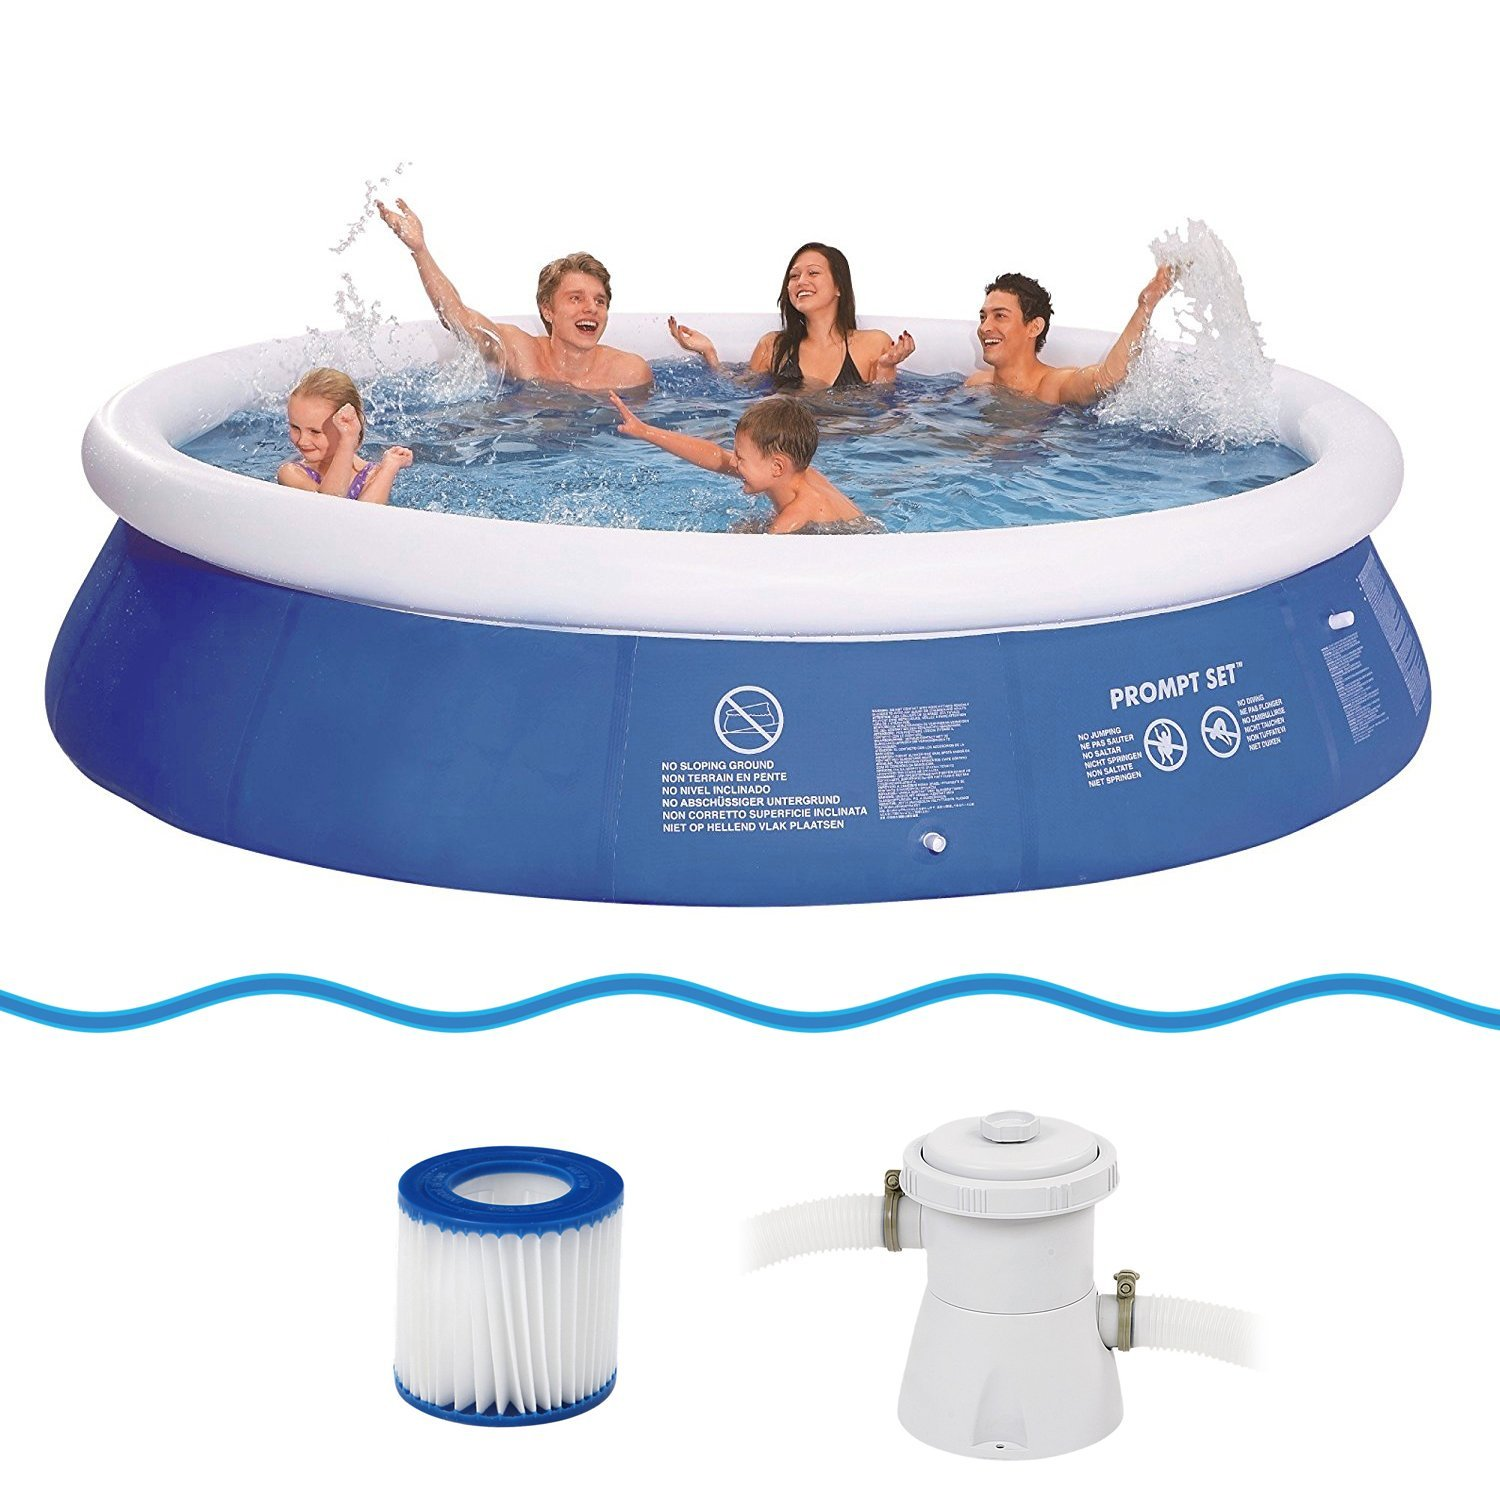 Jilong Prompt Set Pool Marin Blue 360 Set - Set de Piscina Quick ...